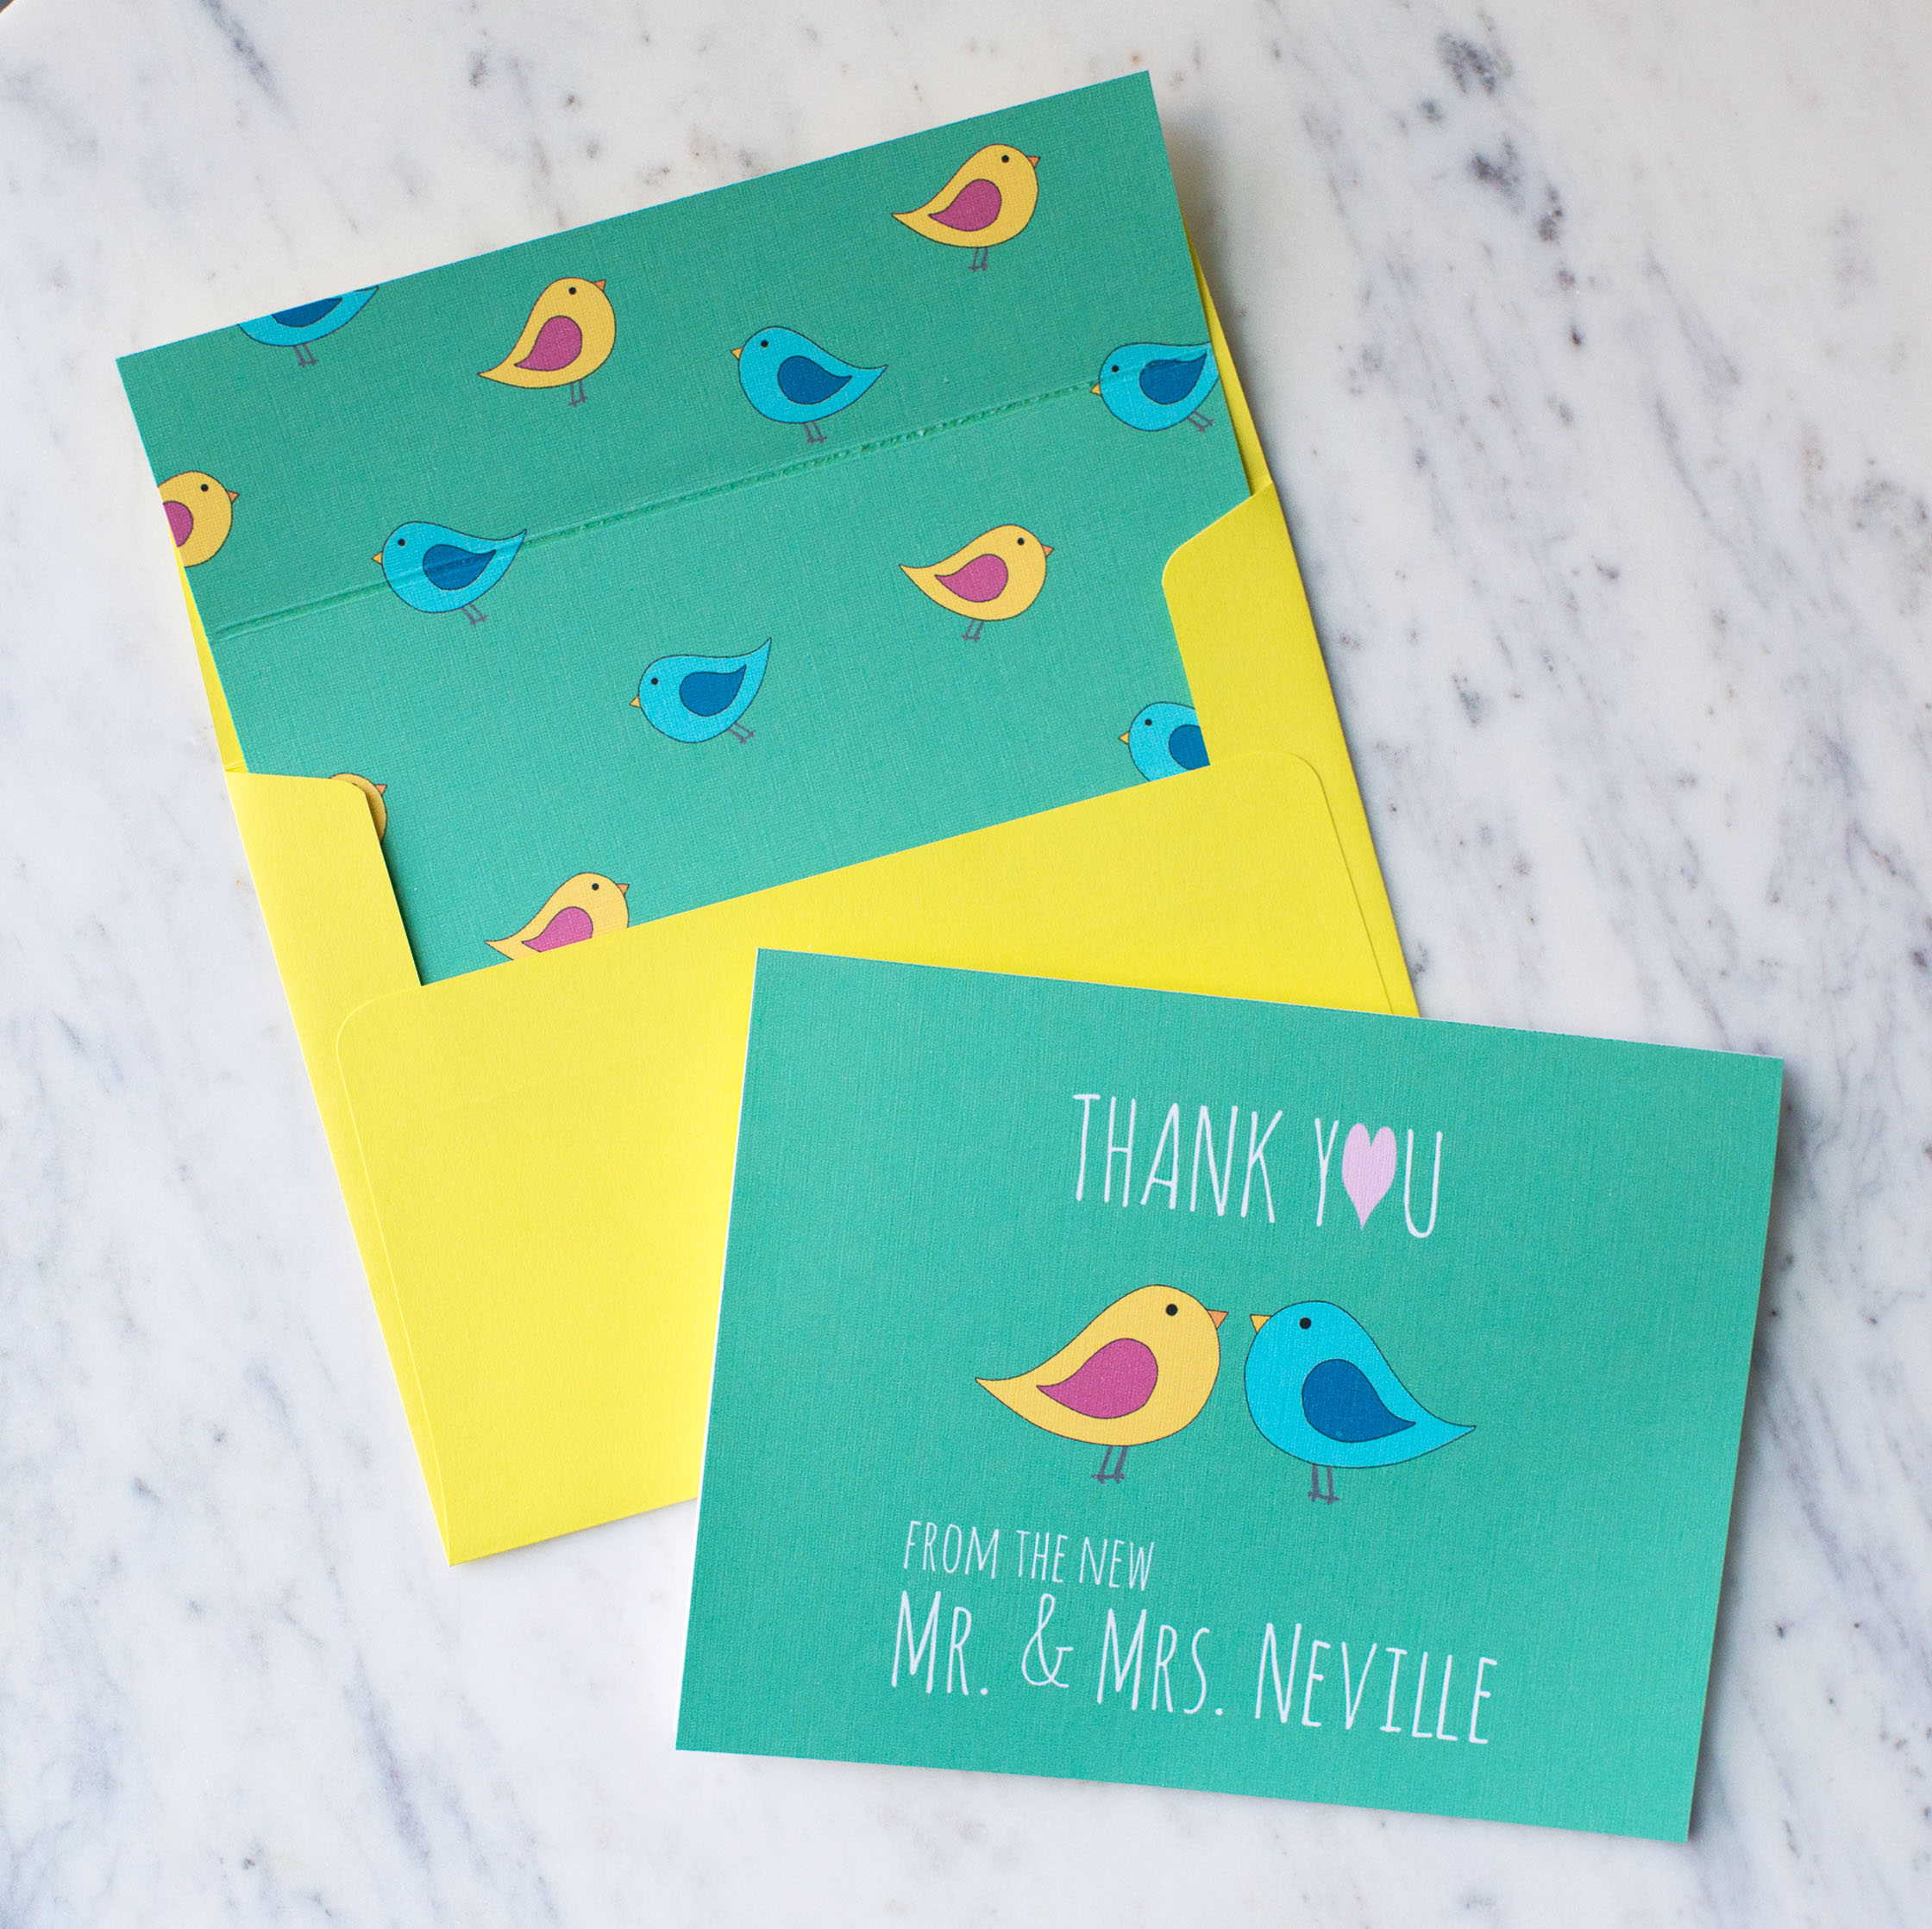 Thank You From The New Love Birds Stationery Set in Green